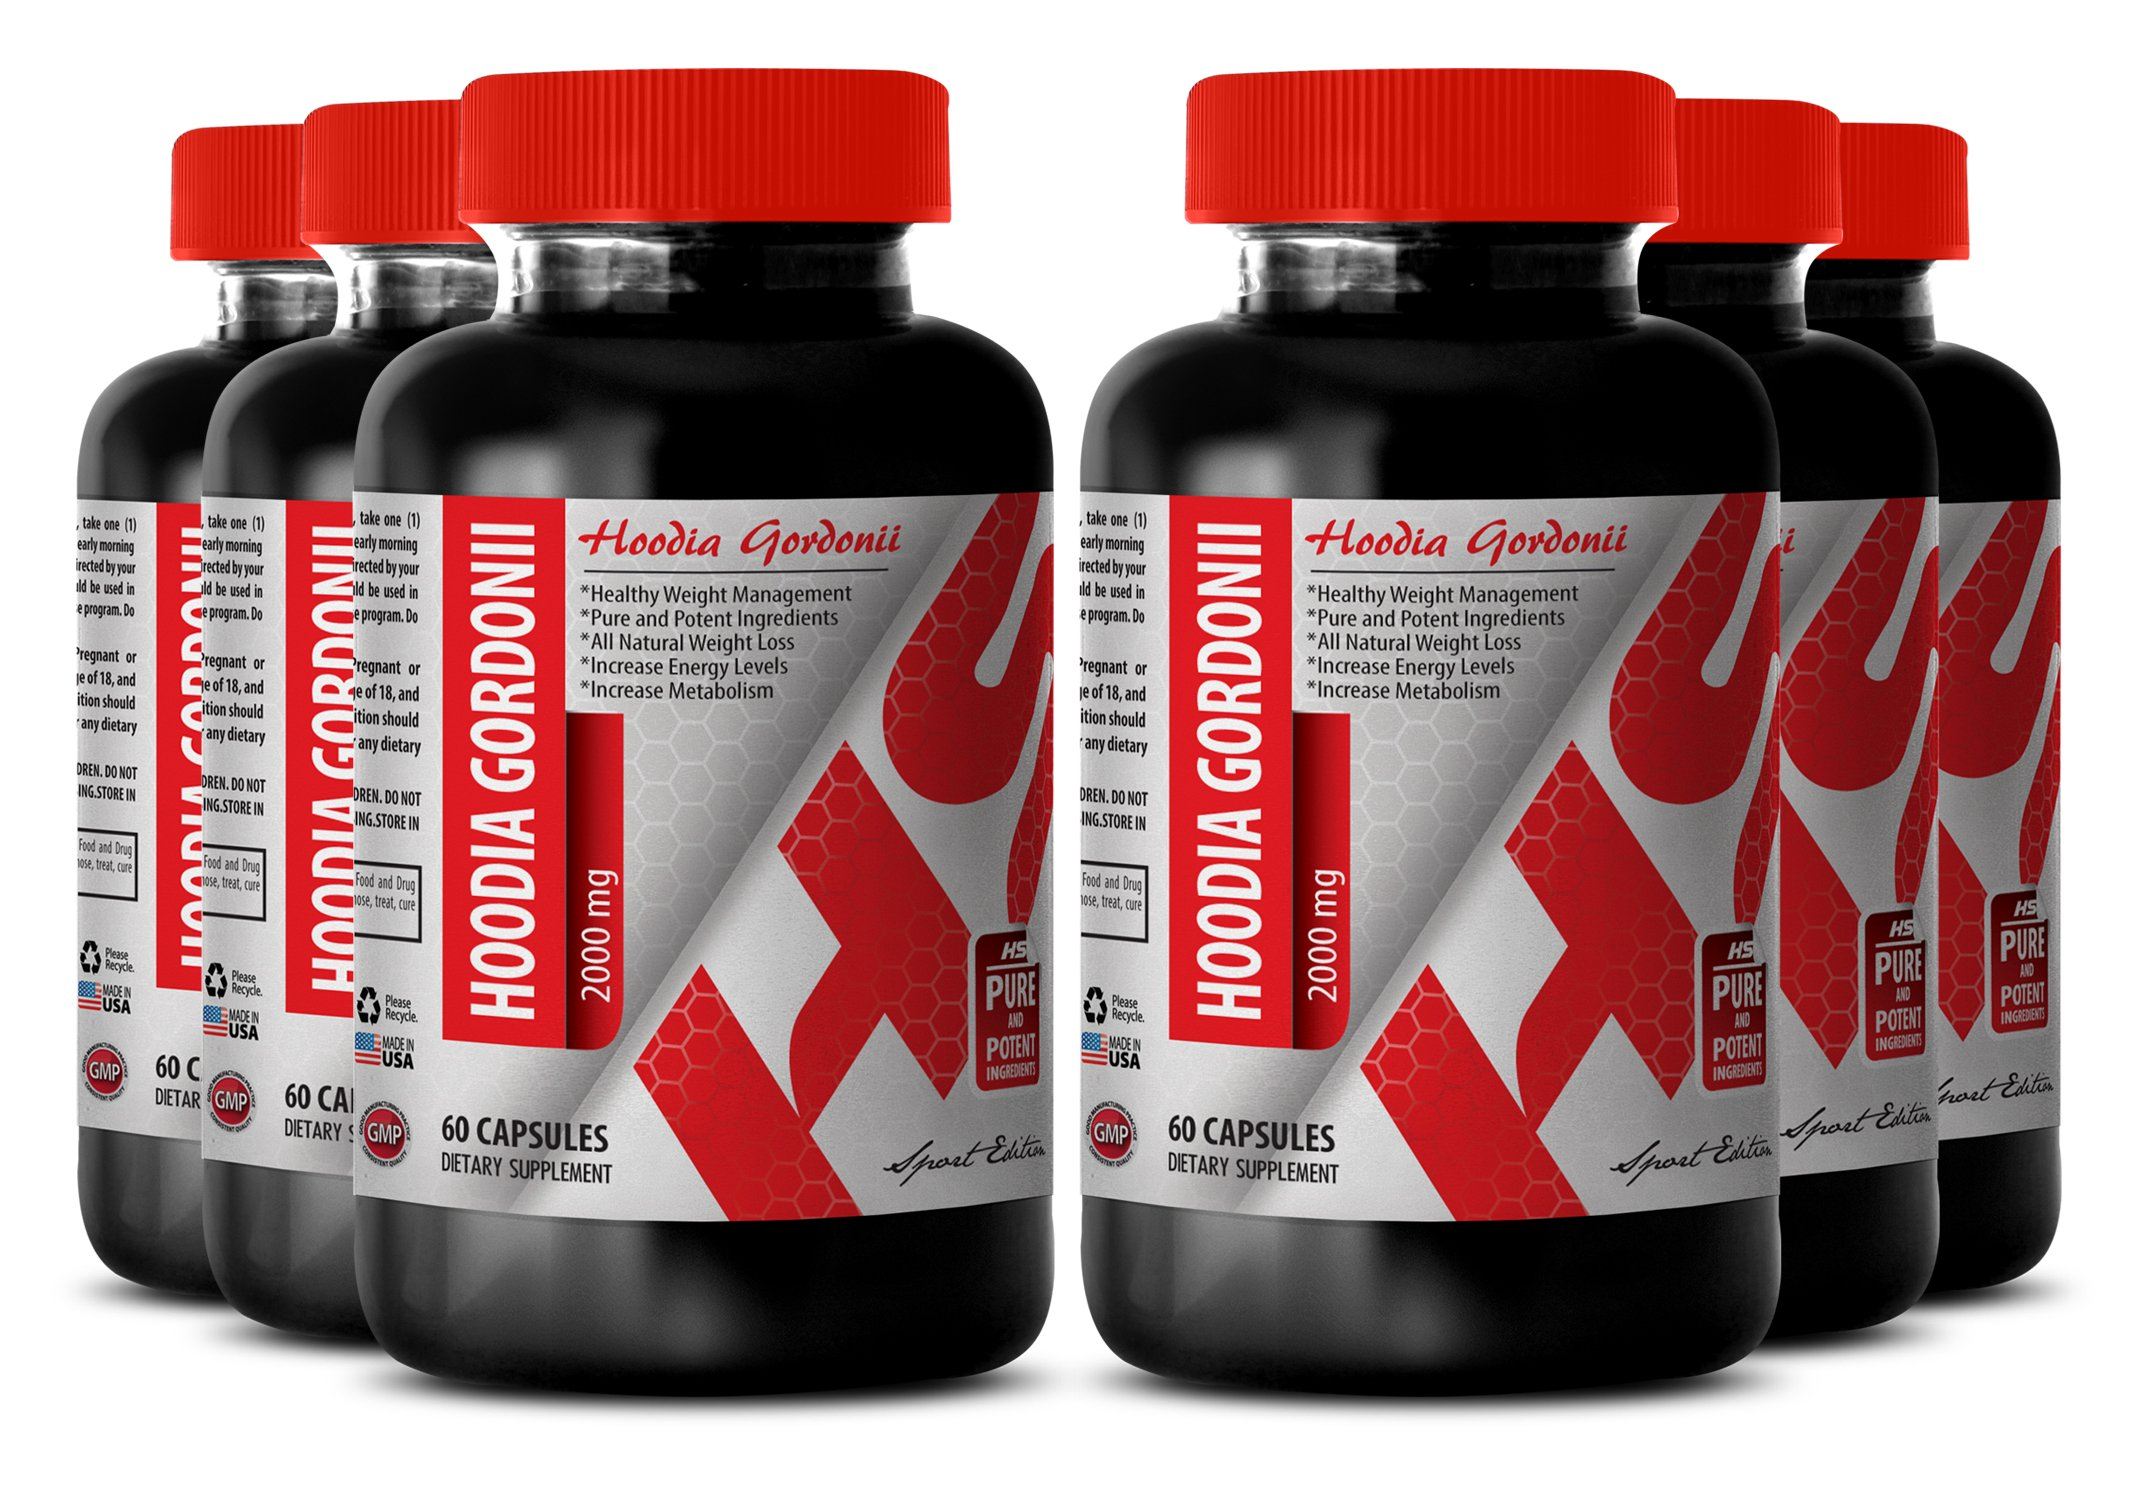 Hoodia appetite - HOODIA GORDONII POWDER 2000 MG - support digestion (6 Bottles) by Healthy Supplements LLC